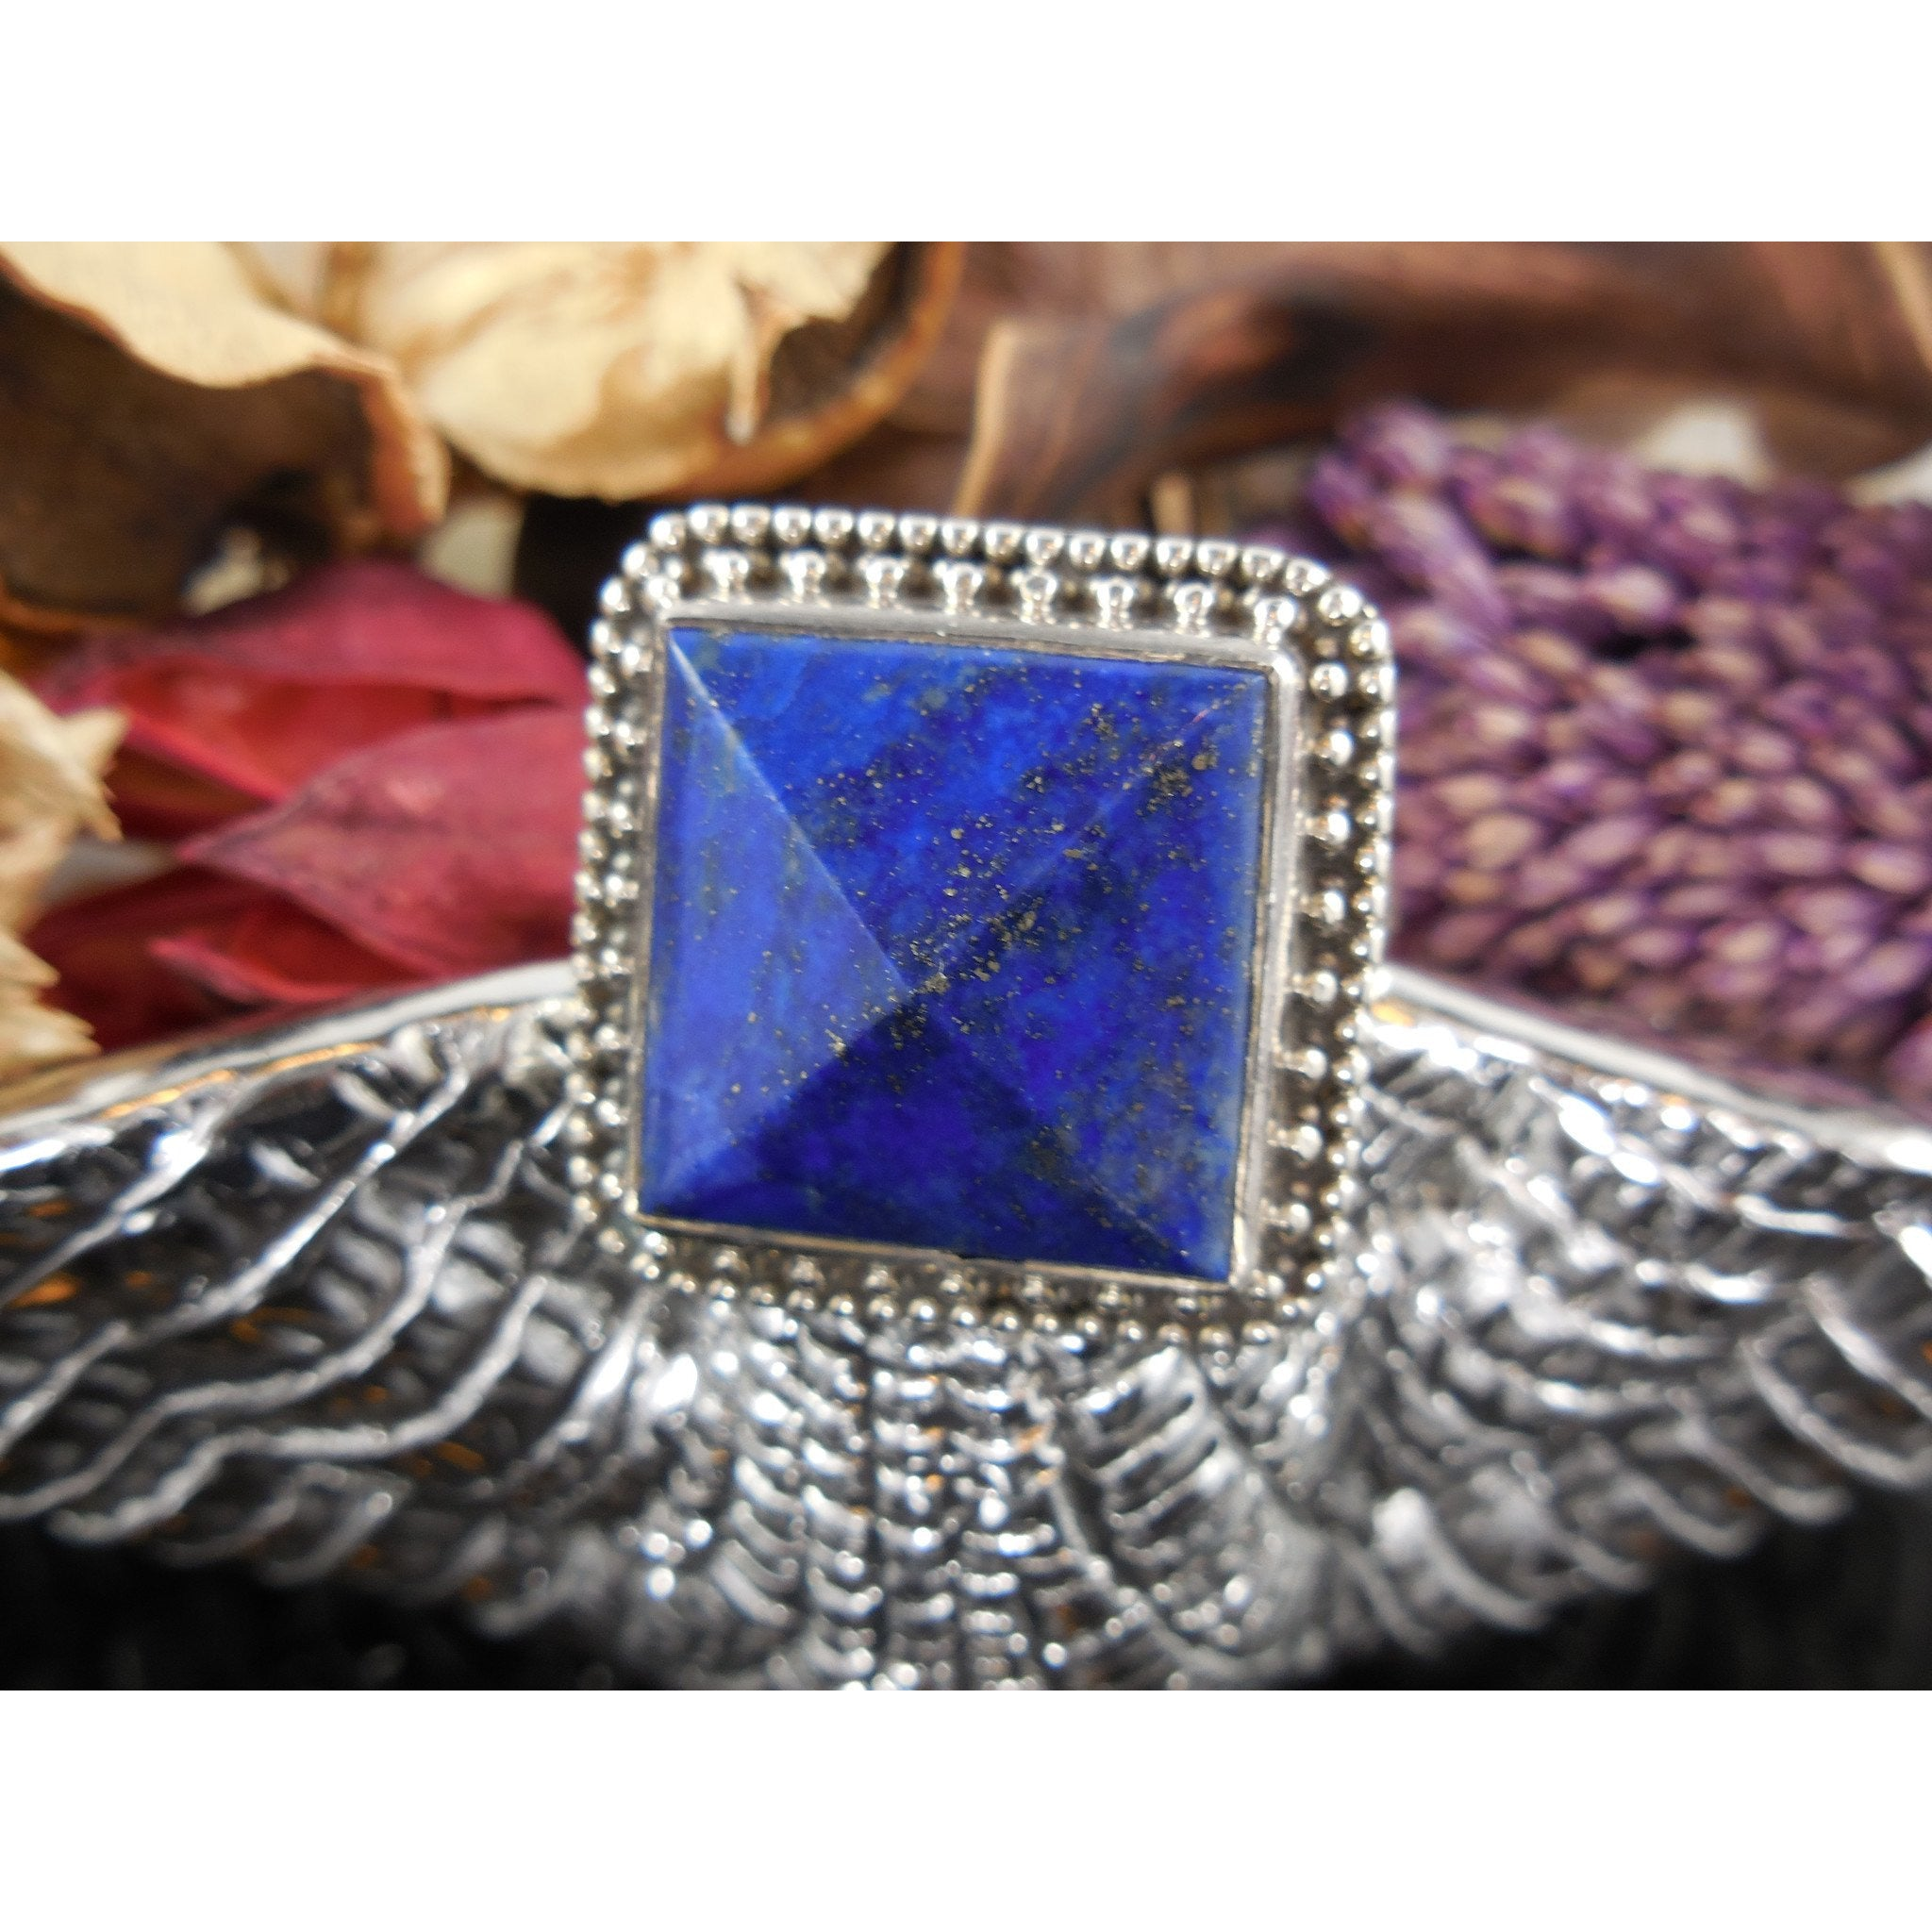 Lapis Gemstone Pyramid Sterling Silver Ring - Size 7.5